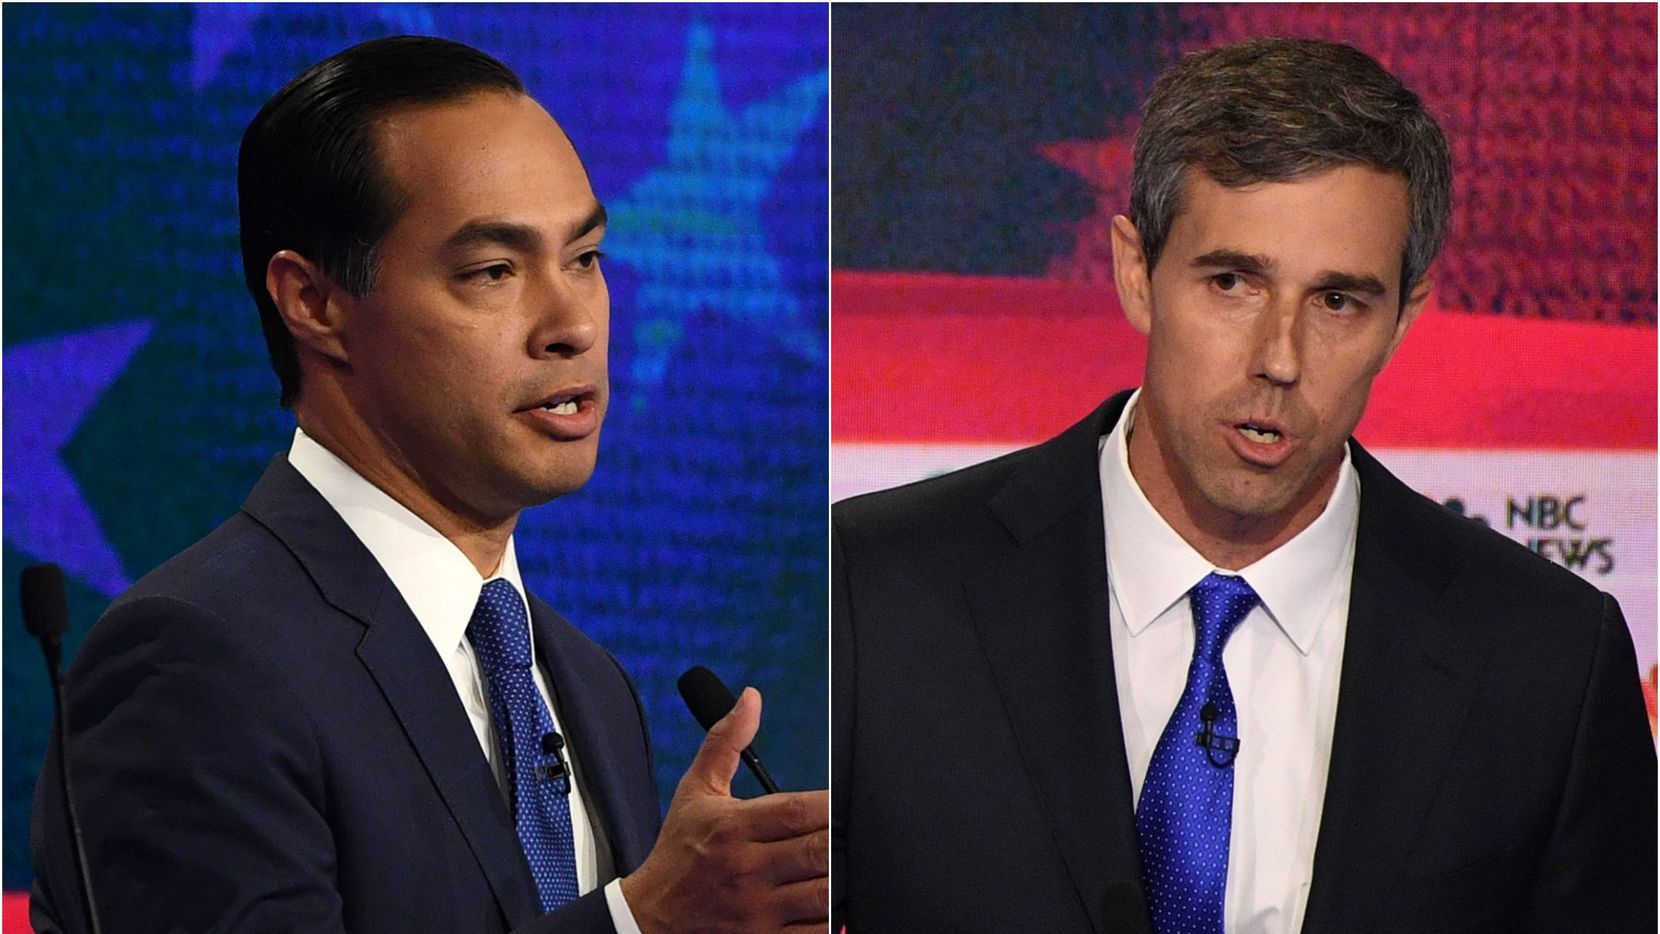 Democratic presidential hopefuls Julian Castro and Beto O'Rourke during the first Democratic primary debate of the 2020 presidential campaign season, hosted by NBC News at the Adrienne Arsht Center for the Performing Arts in Miami on June 26, 2019.